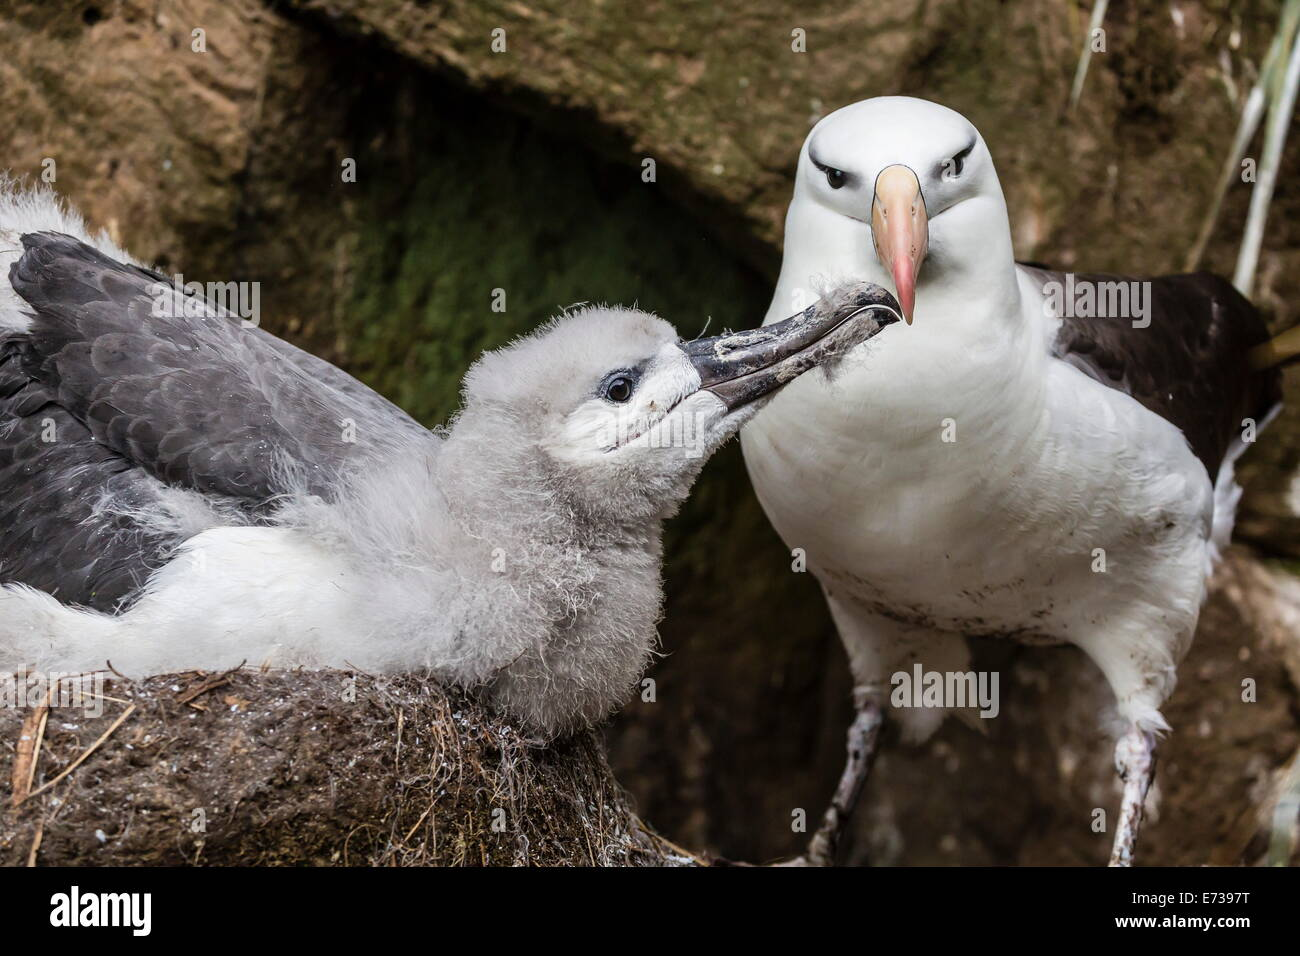 Black-browed albatross chick in nest being fed by adult on Saunders Island, Falkland Islands, UK Overseas Protectorate - Stock Image